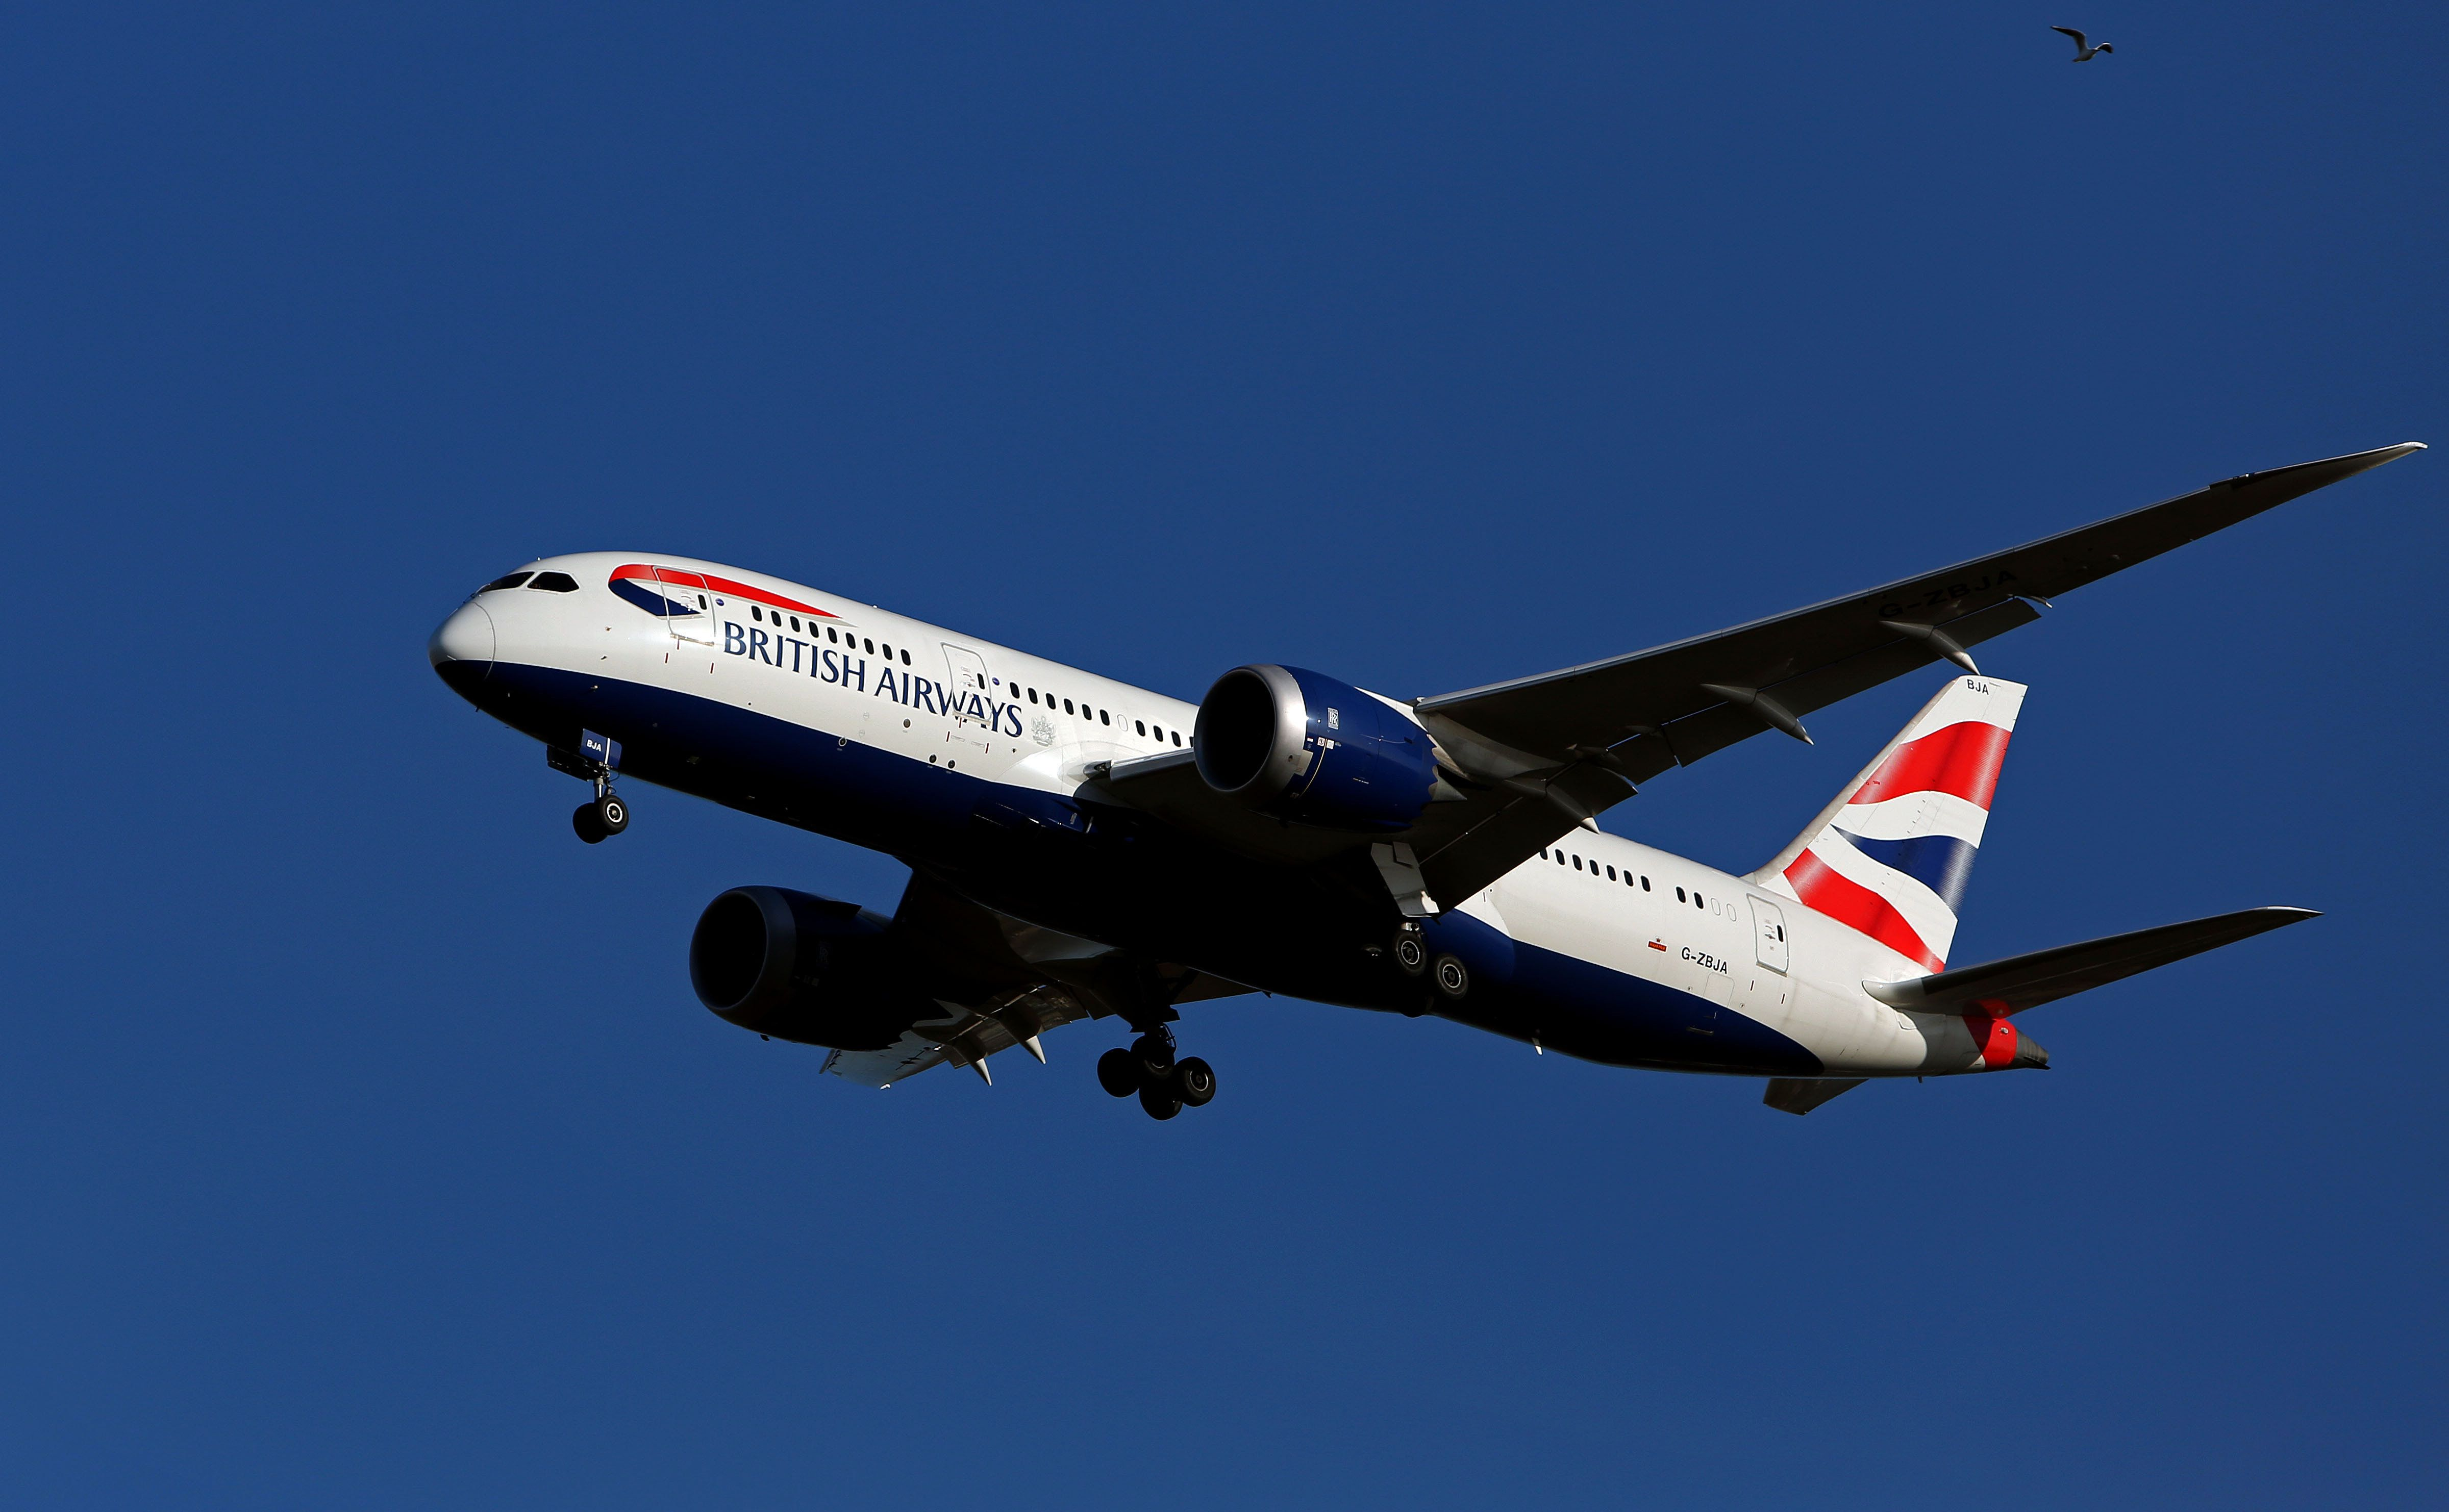 A British Airways Boeing 787-8 Dreamliner plane with the registration G-ZBJA lands at Heathrow